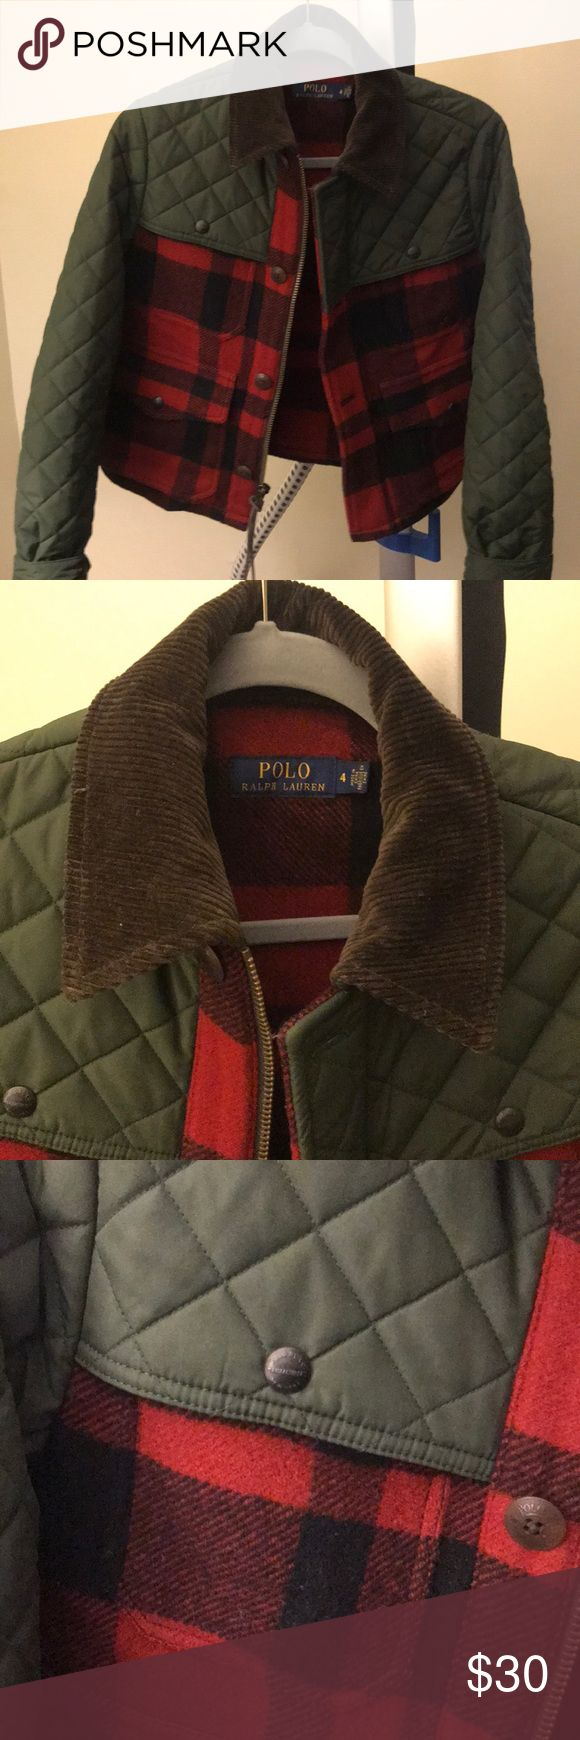 Lumber style Polo jacket Very chic, country, stylist lumberjack coat. Great condition! OR BEST OFFER, Bundle & save! Polo by Ralph Lauren Jackets & Coats